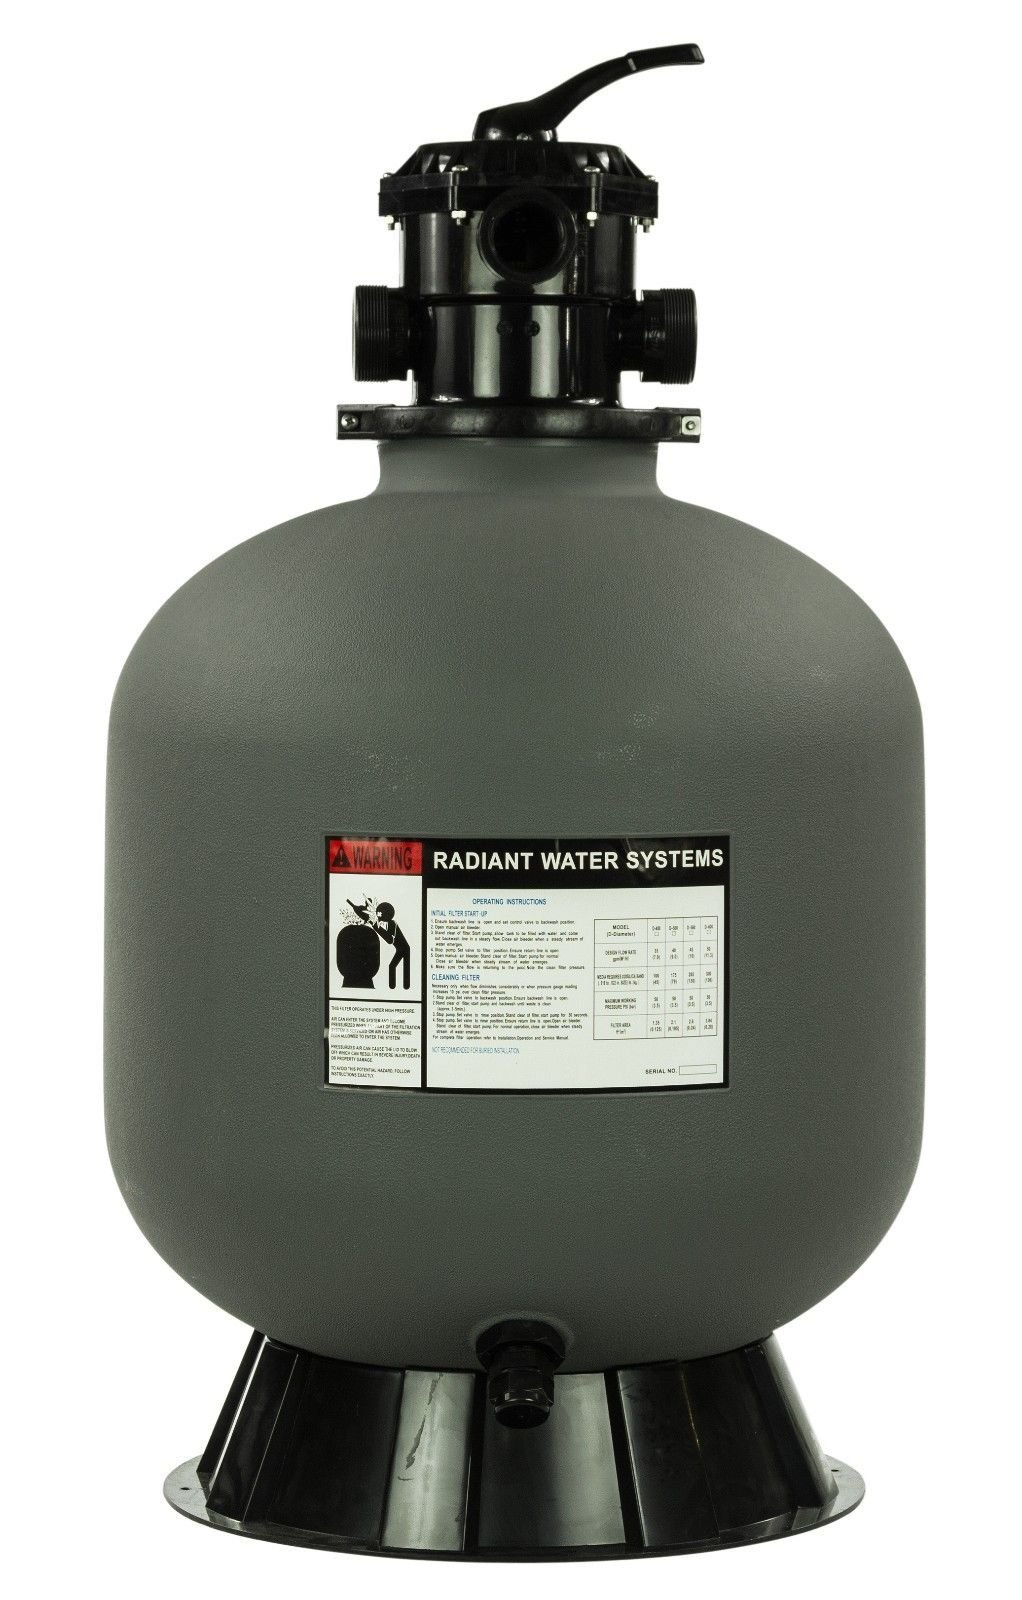 Rx Clear Radiant Sand Filter System | Inground Swimming Pool | 24 Inch | 6-Way Valve Pump by Rx Clear